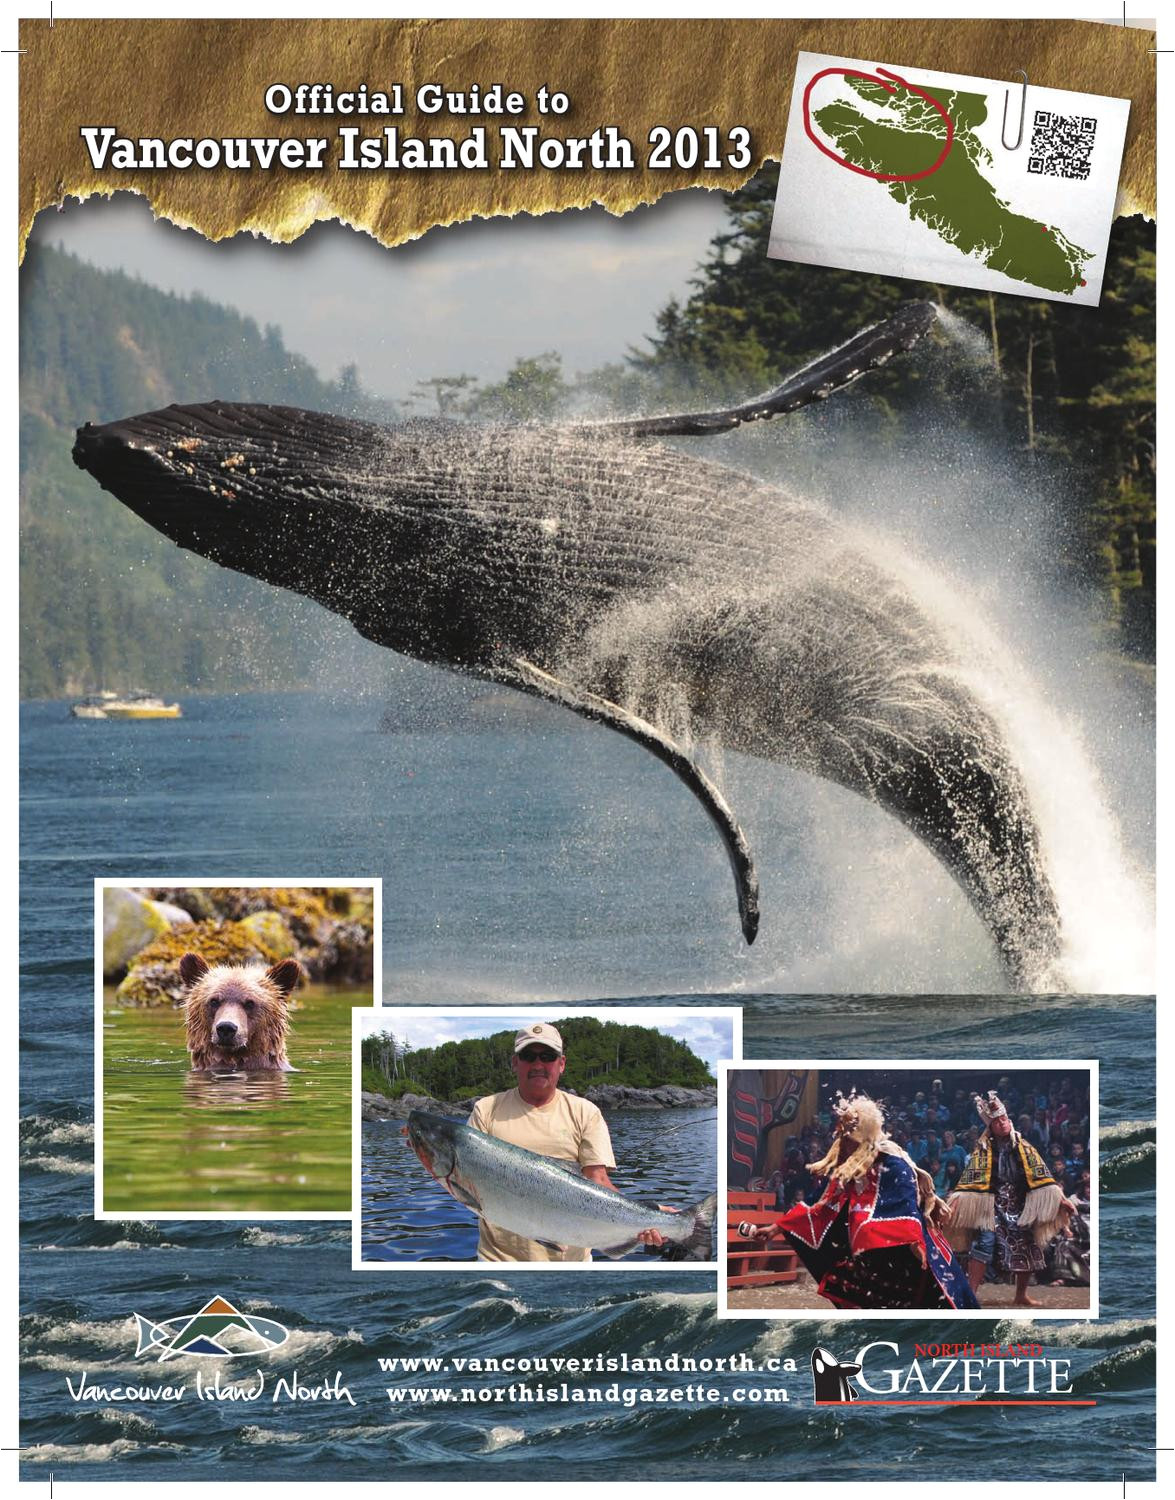 northern vancouver island visitors guide by north island gazette issuu